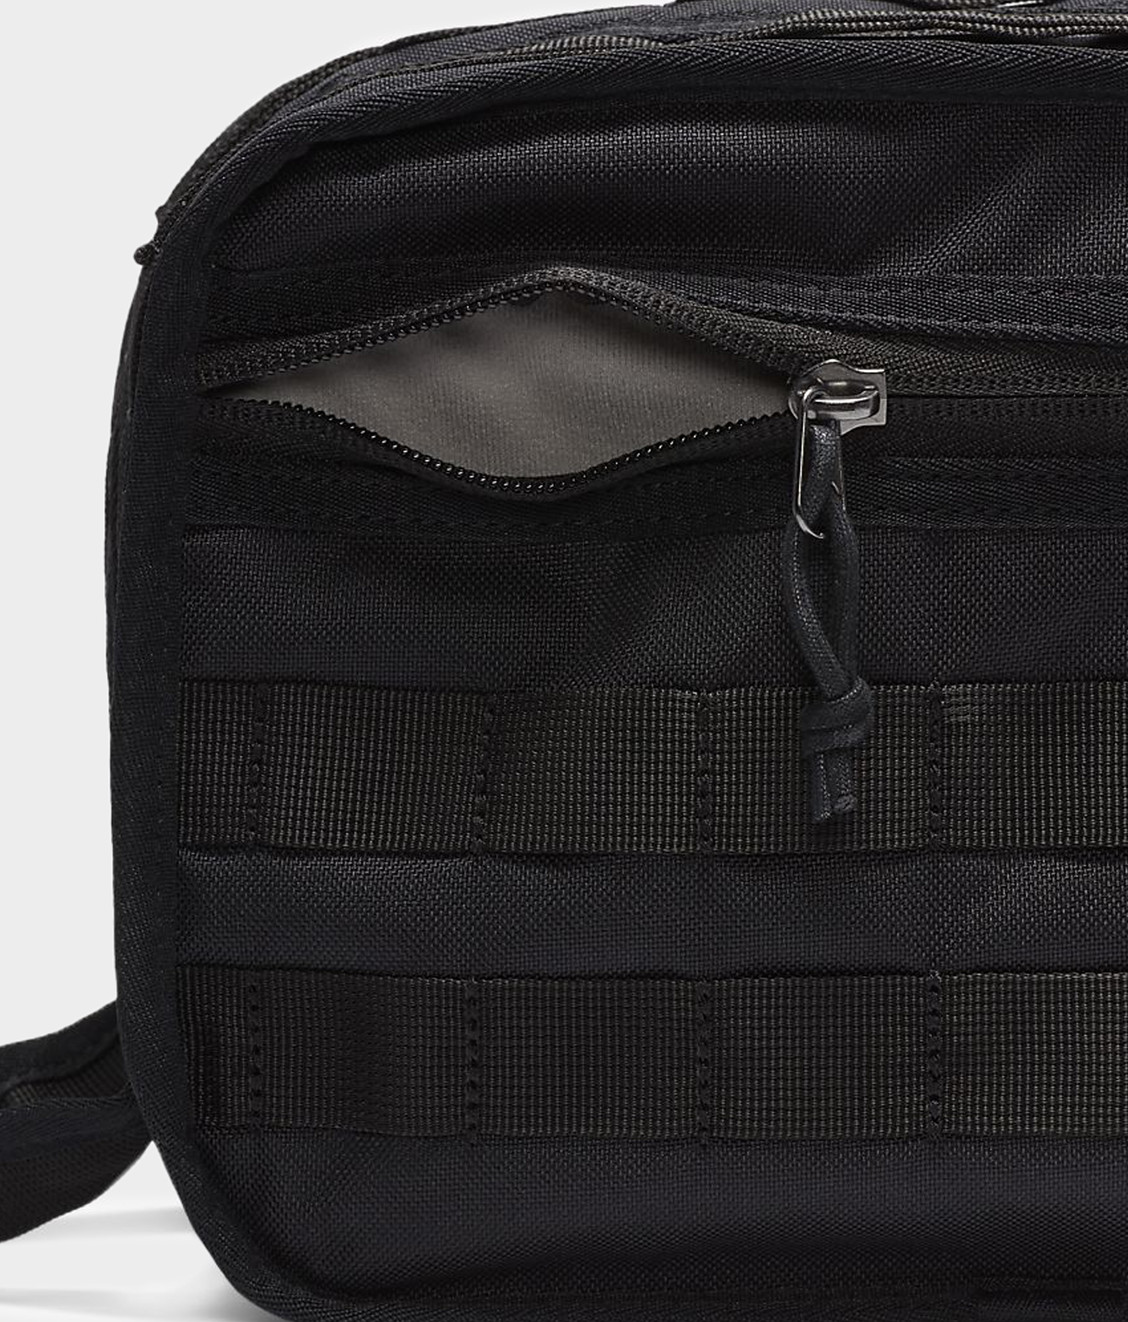 Nike Nike Sportswear RPM Bag Black